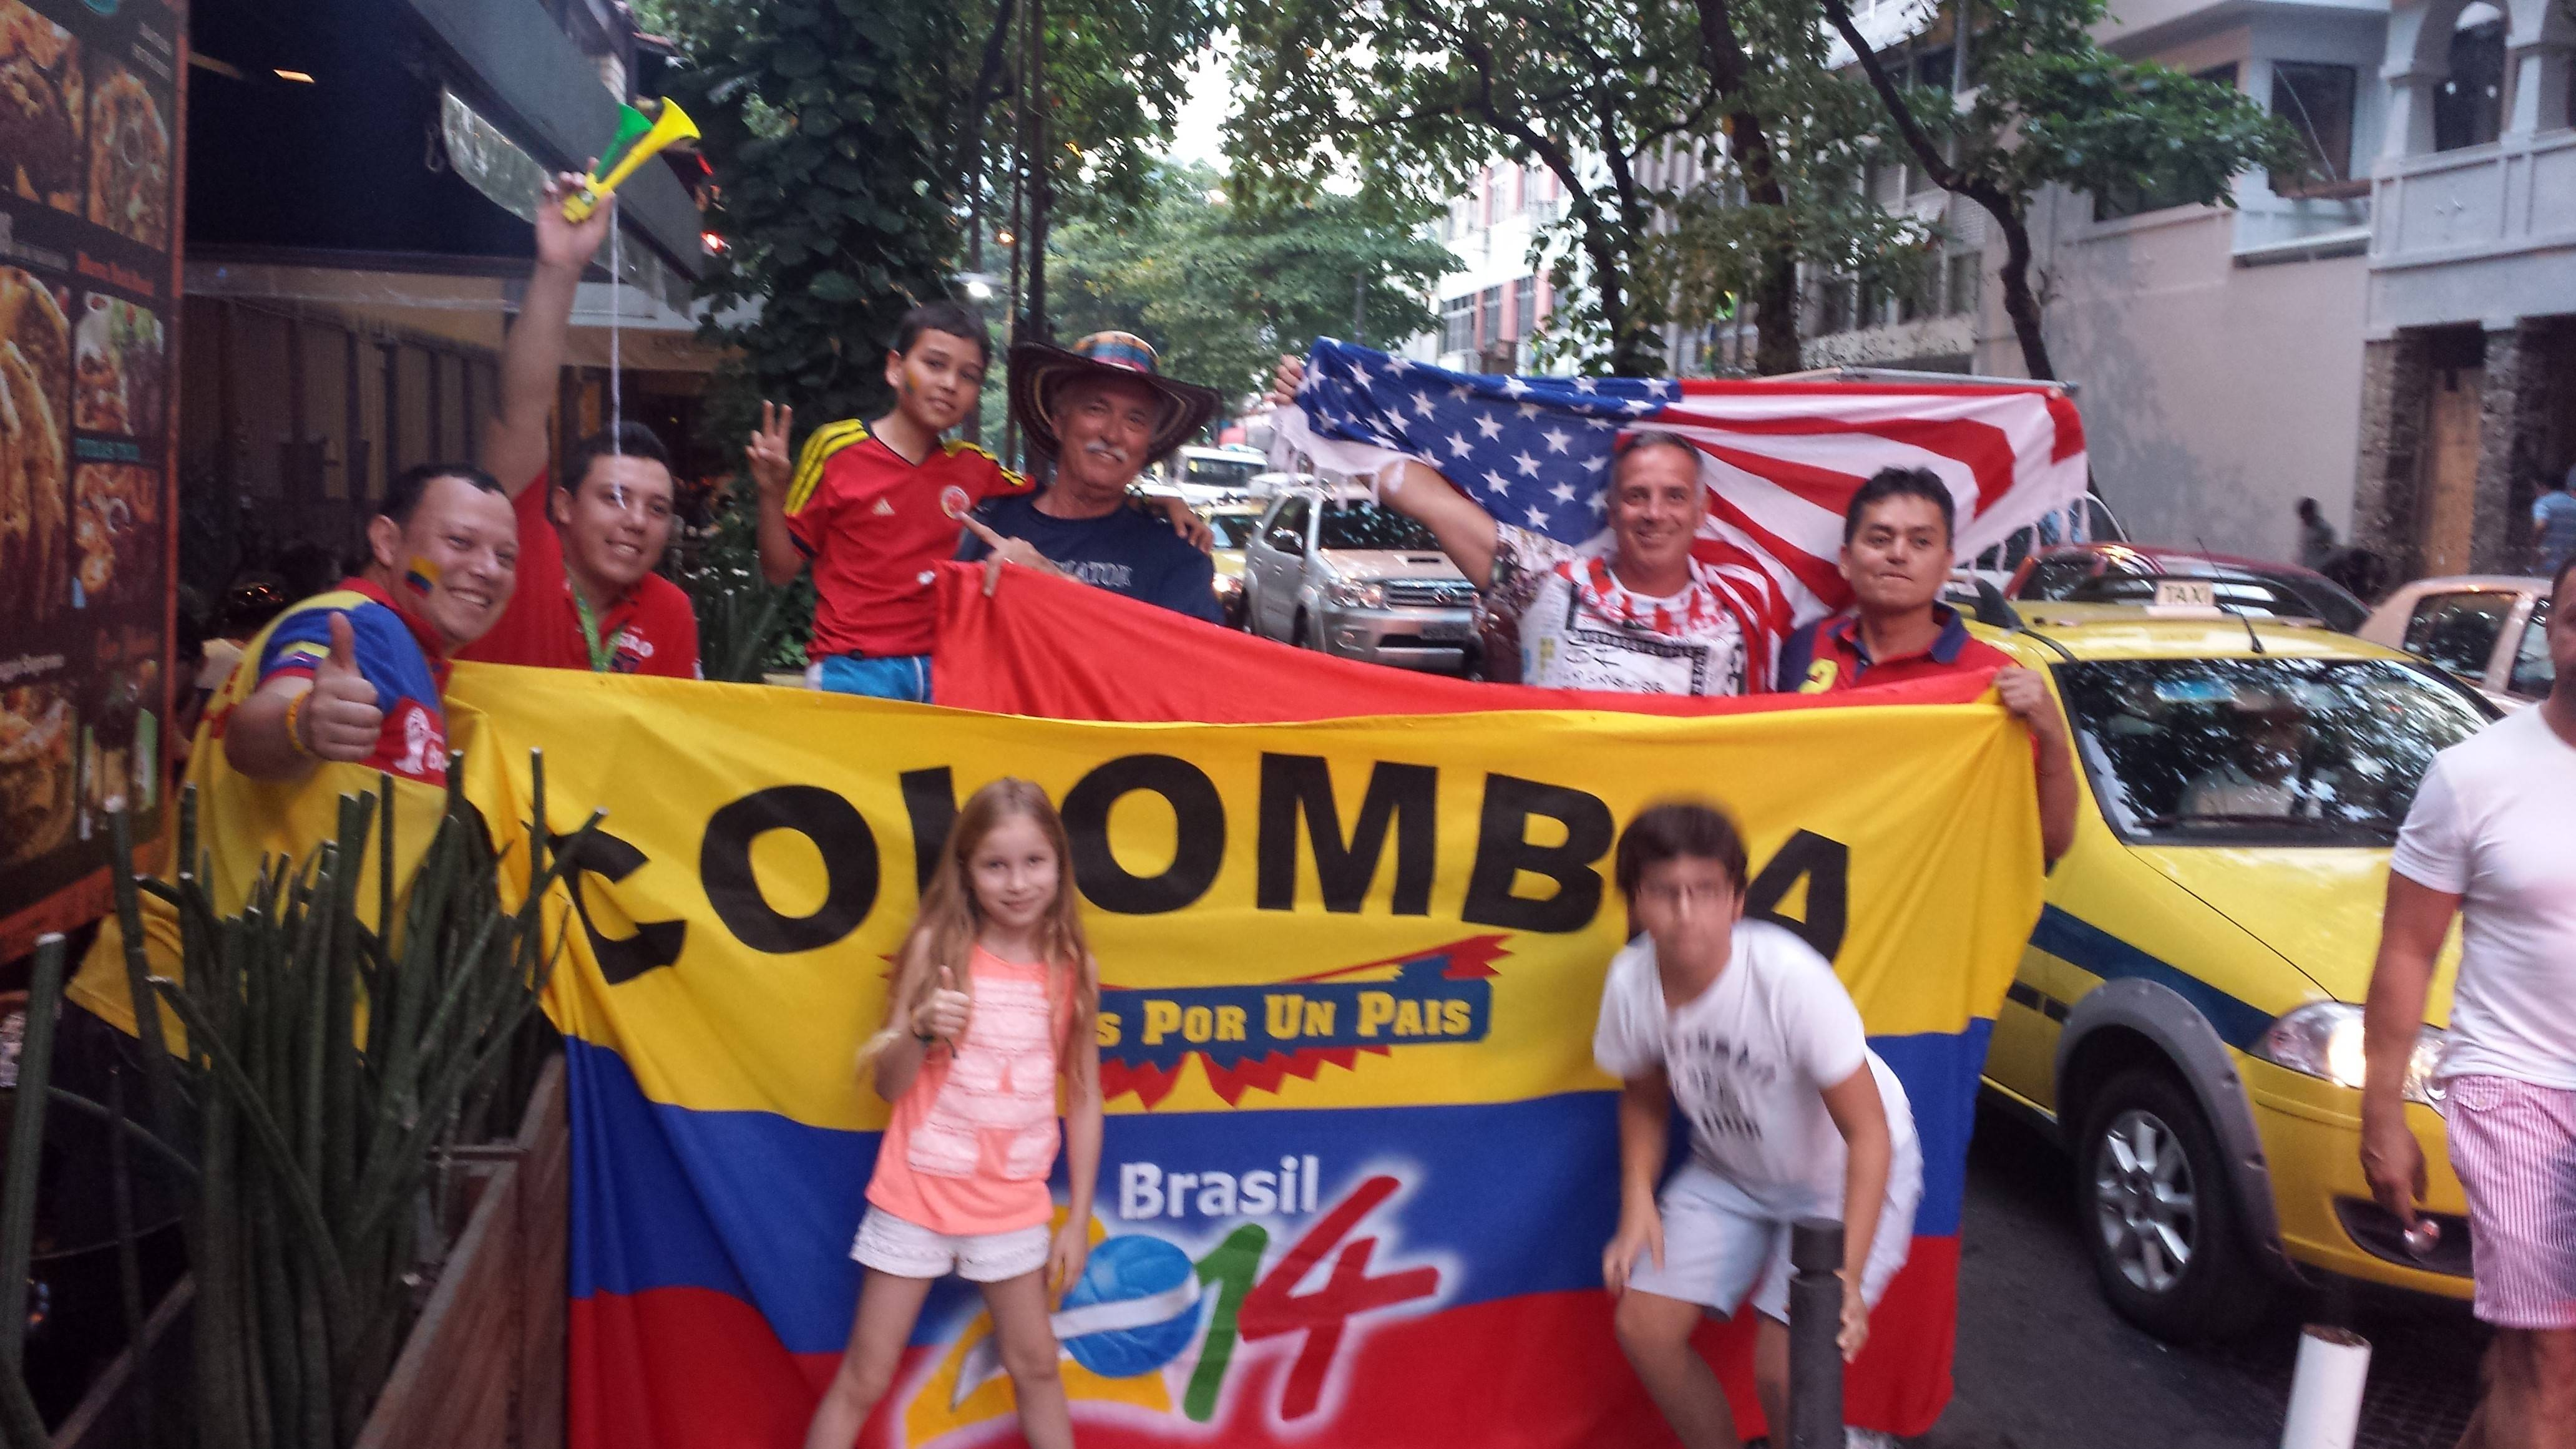 Everywhere you go in Brazil, fans proudly wear or show the colors of their country and favorite team.